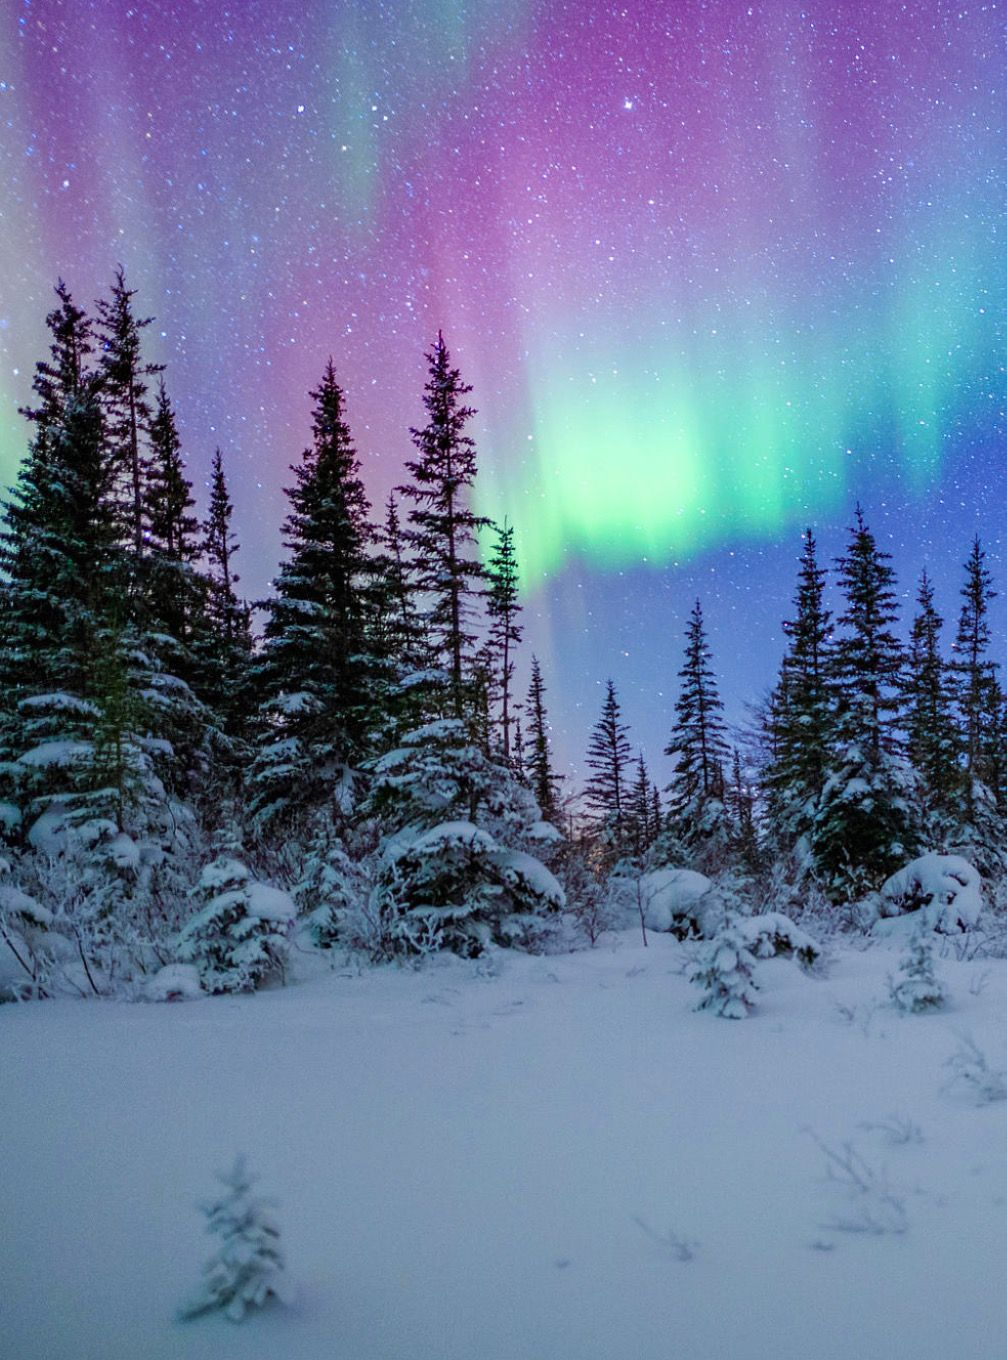 Northern Lights at the edge of the Boreal Forest by David